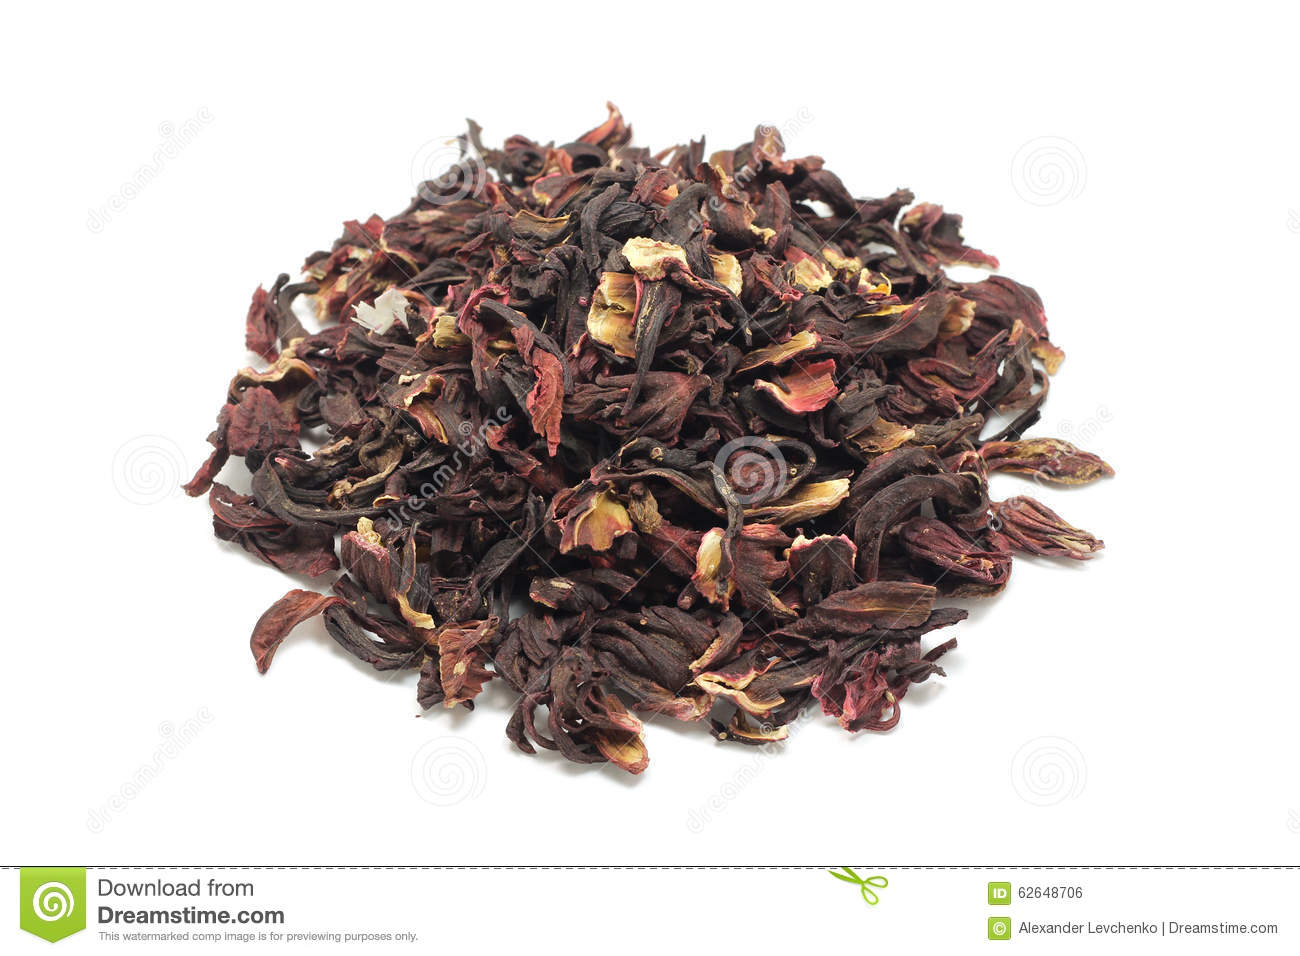 Dried hibiscus flower buds stock photo image of natural 62648706 dried hibiscus flower buds izmirmasajfo